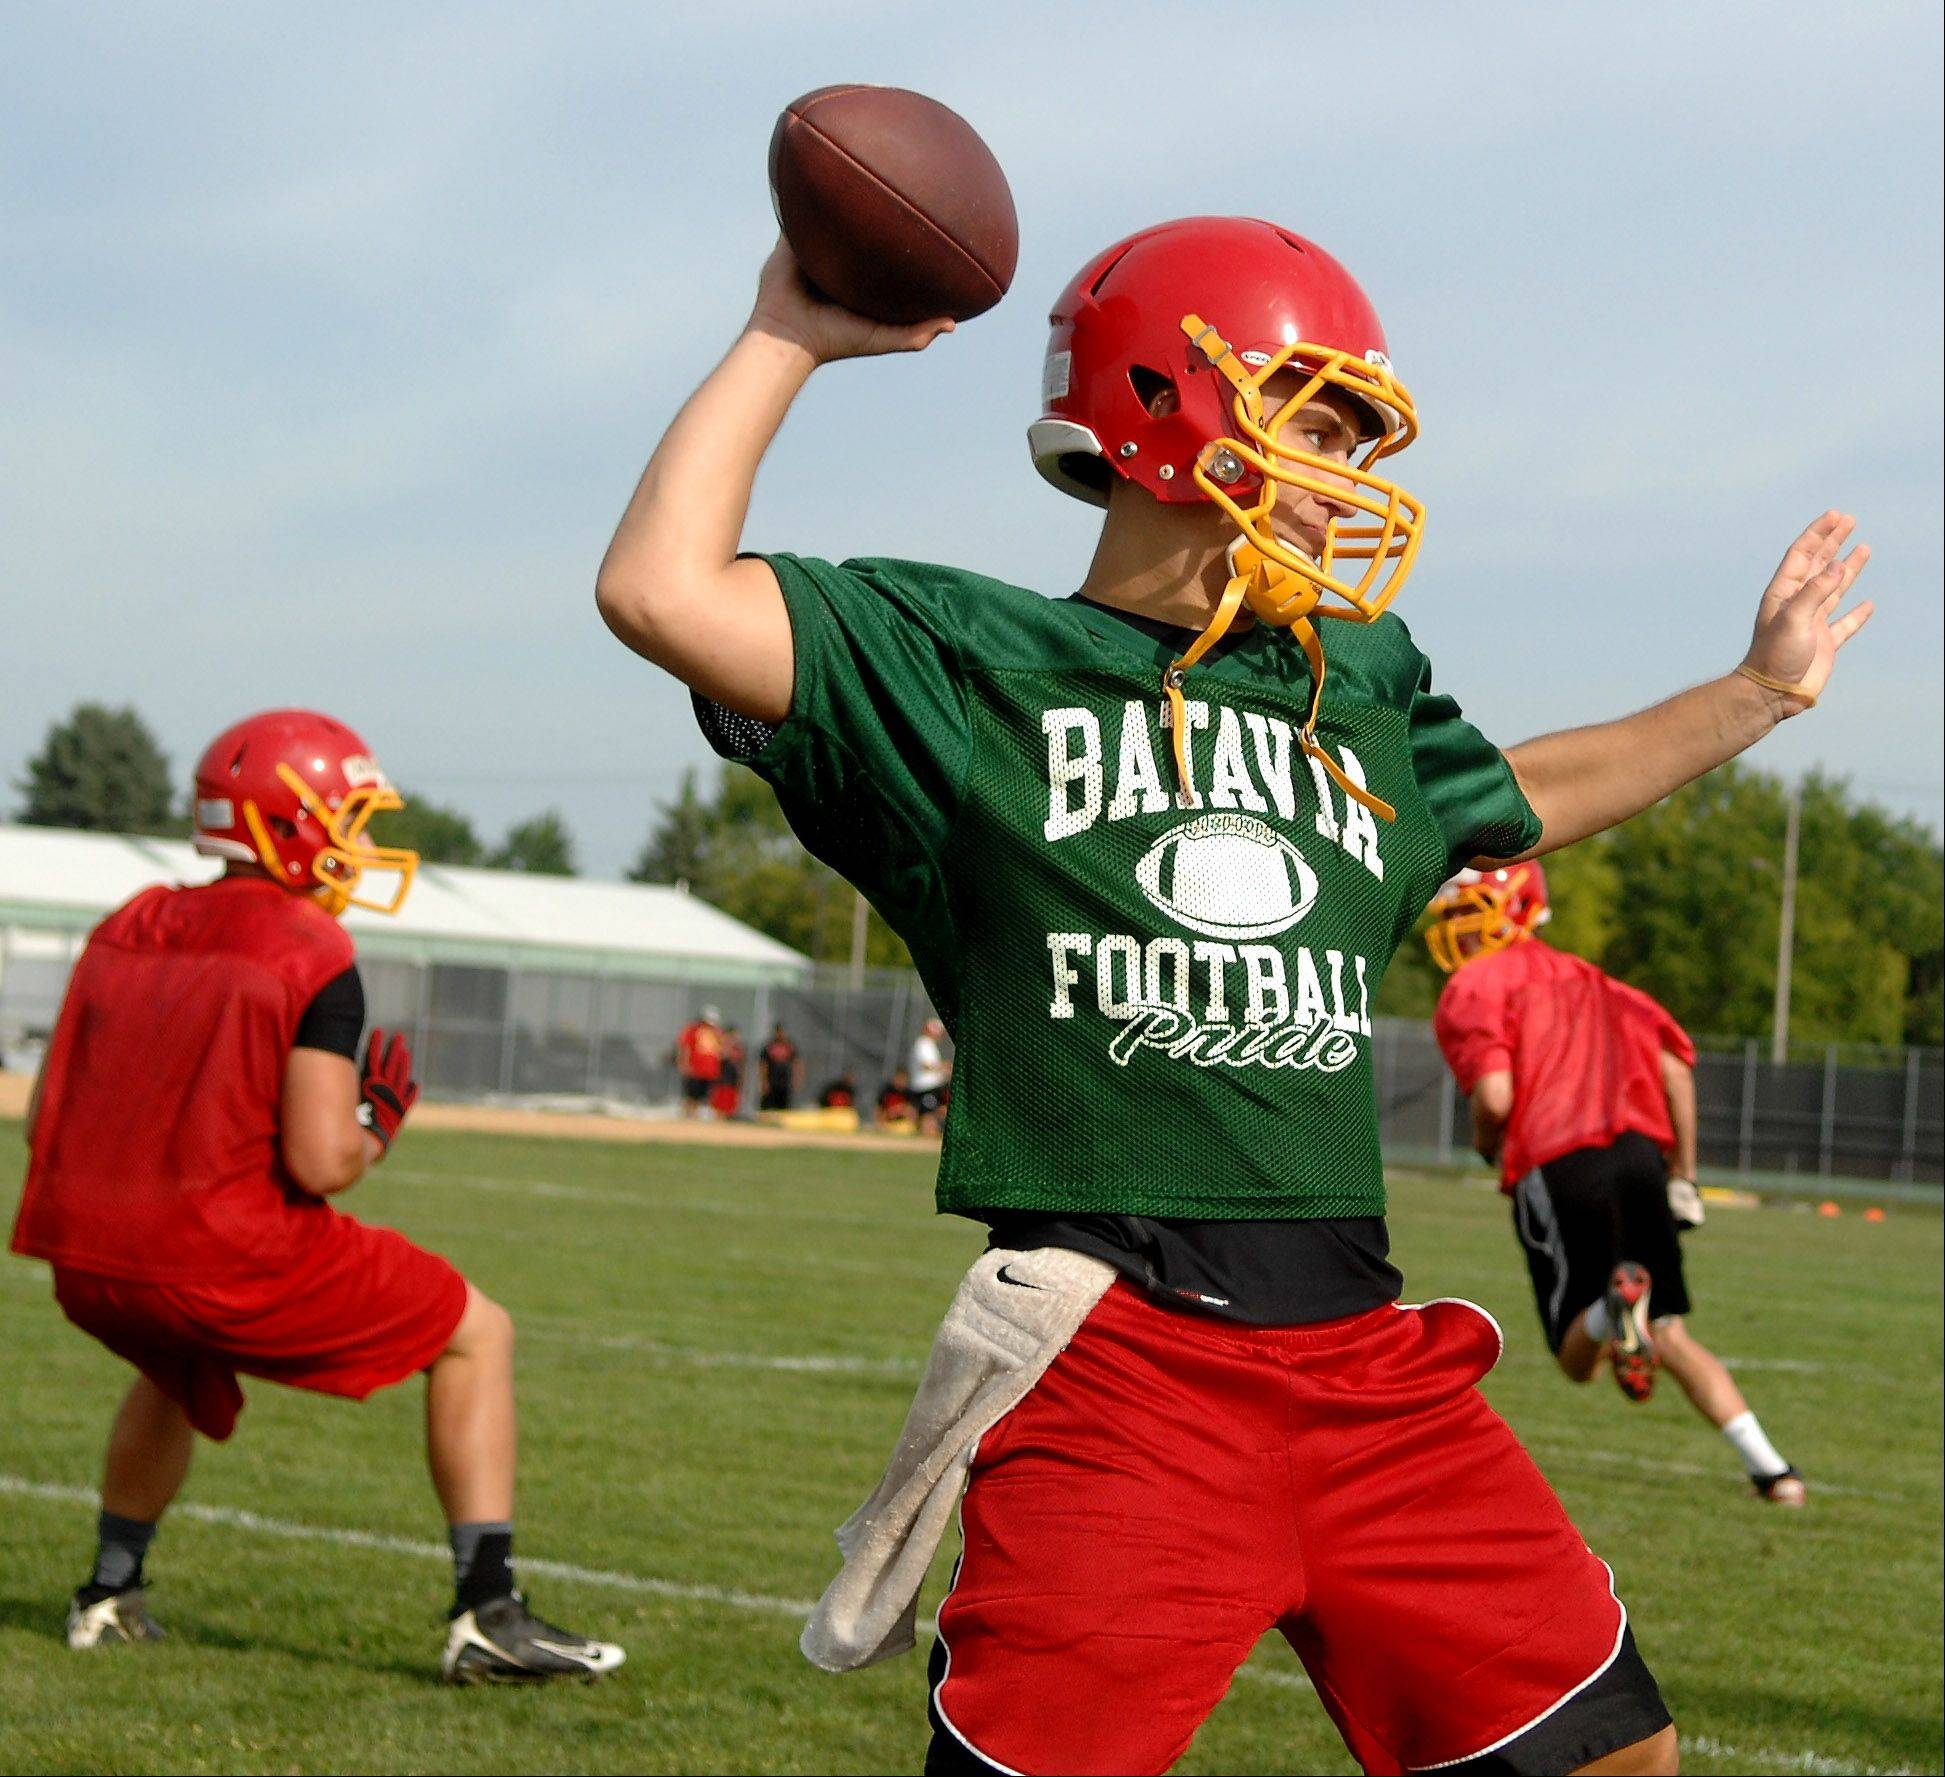 Quarterback Daniel Albrecht rears back to pass at Batavia.